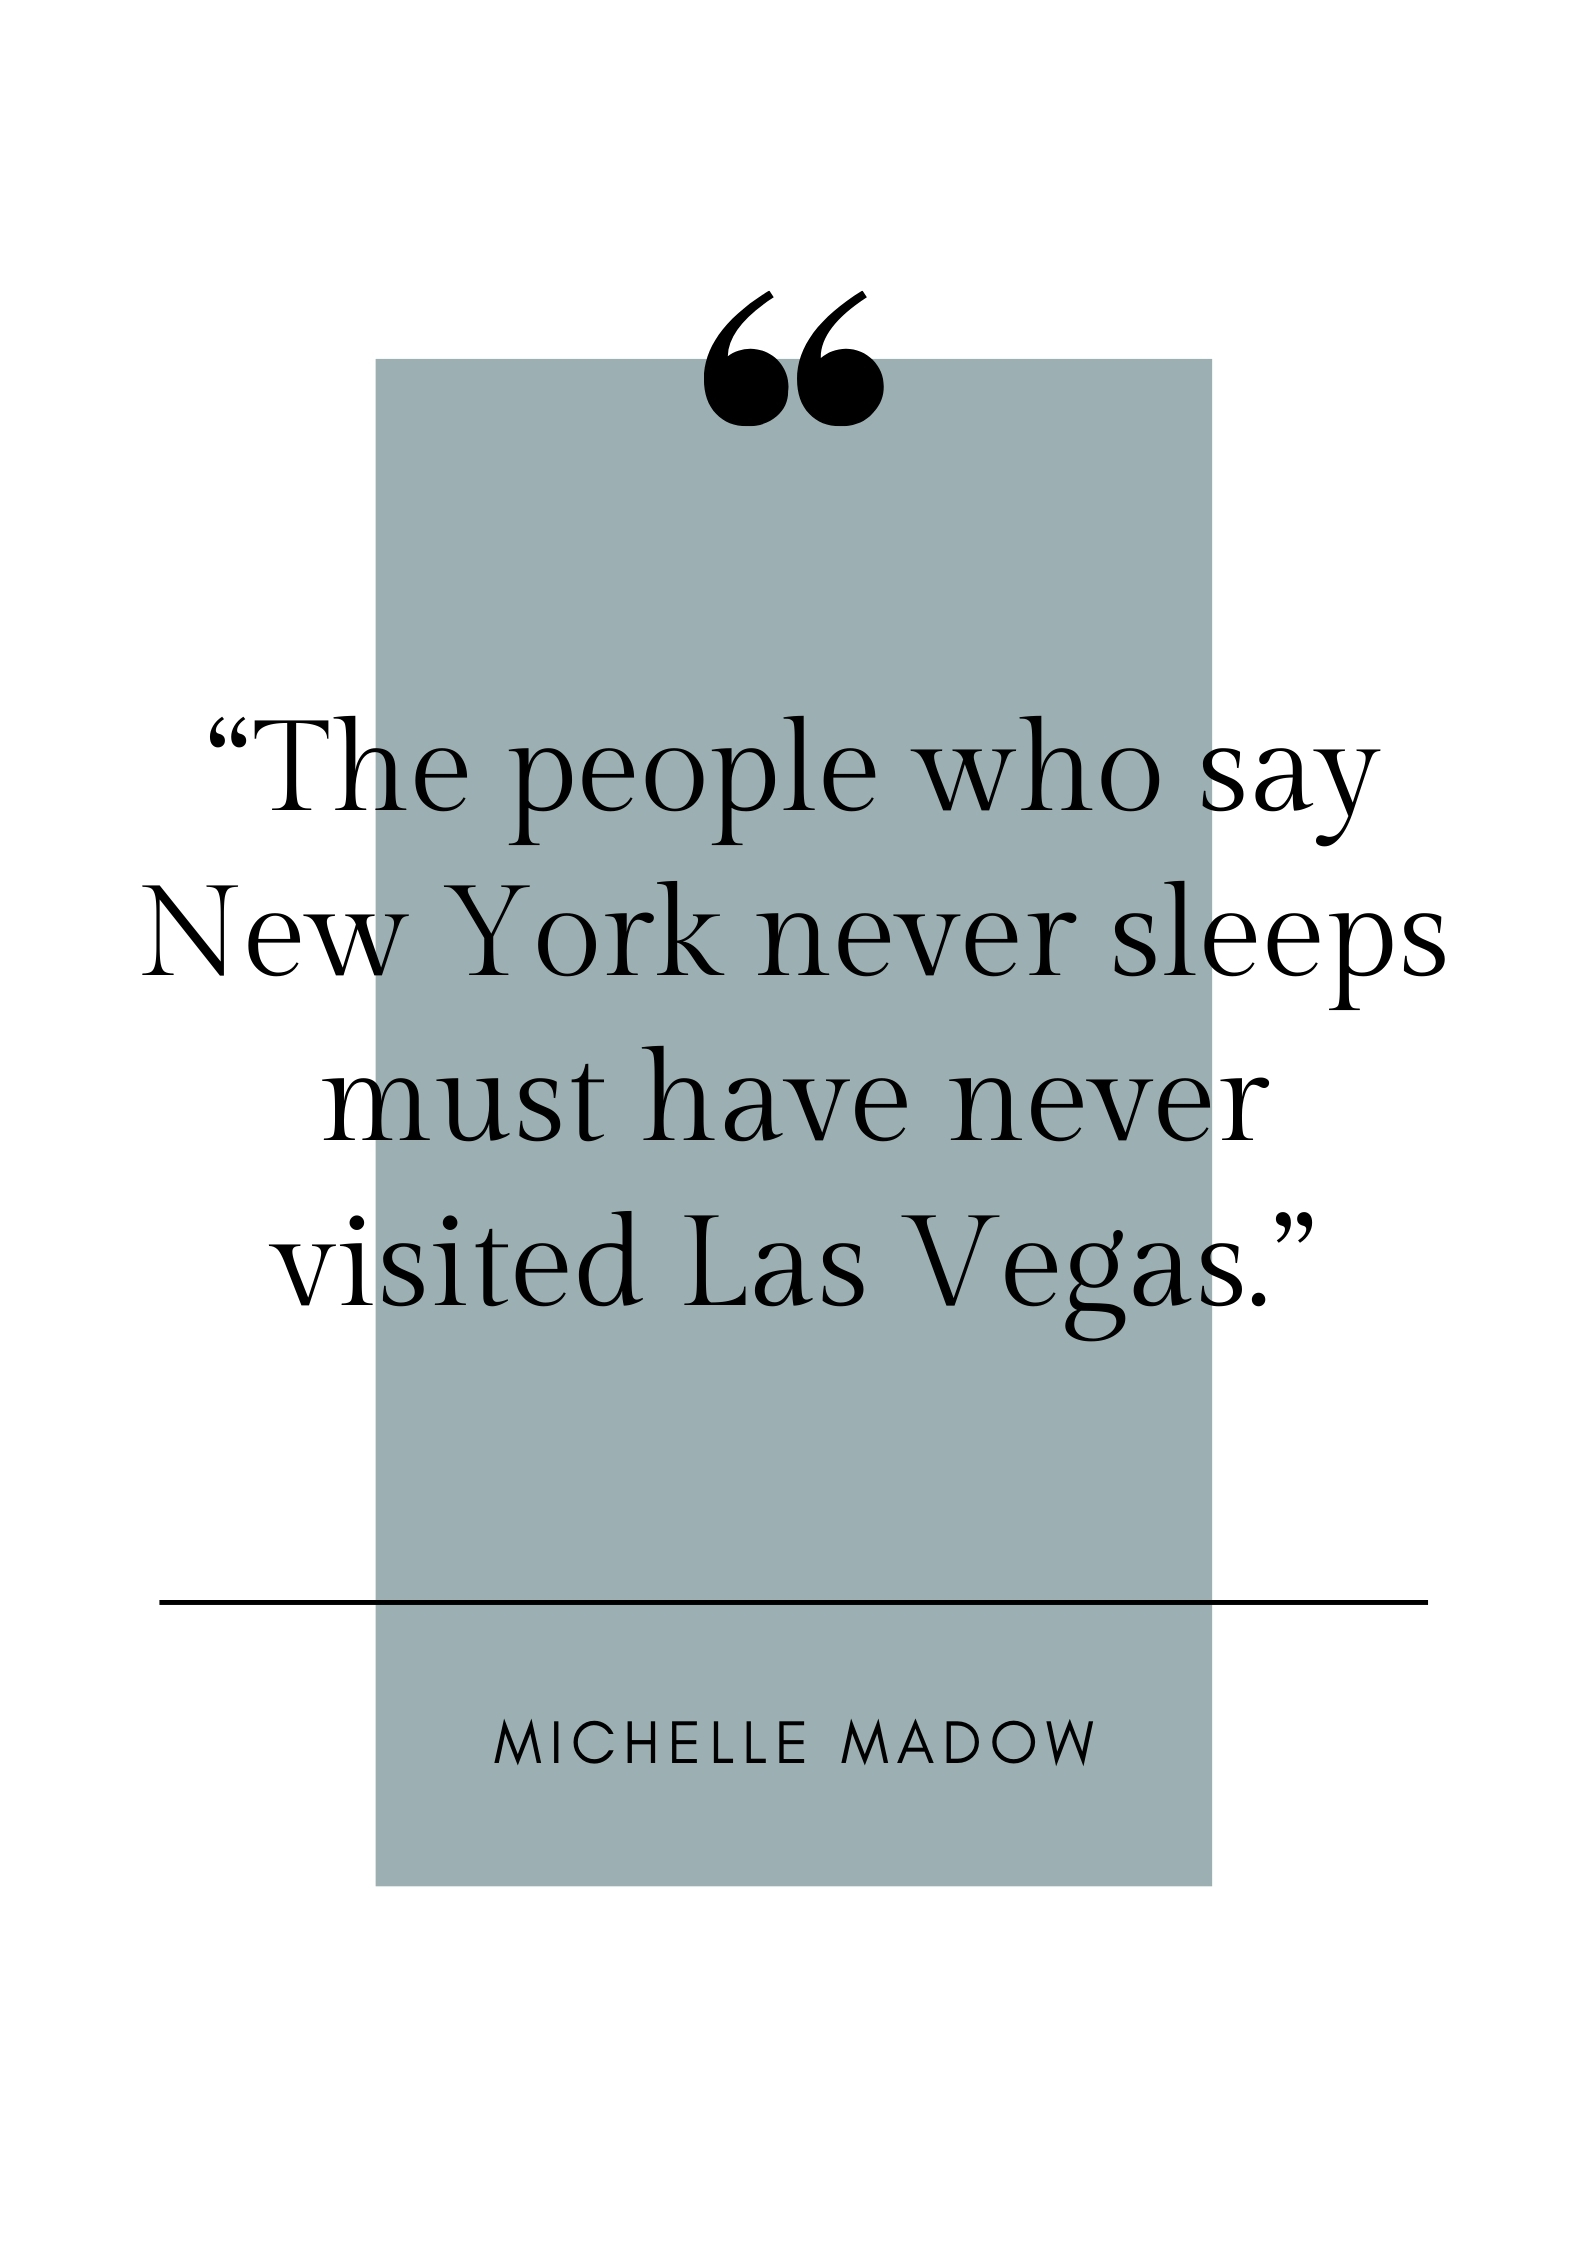 michelle madow quote